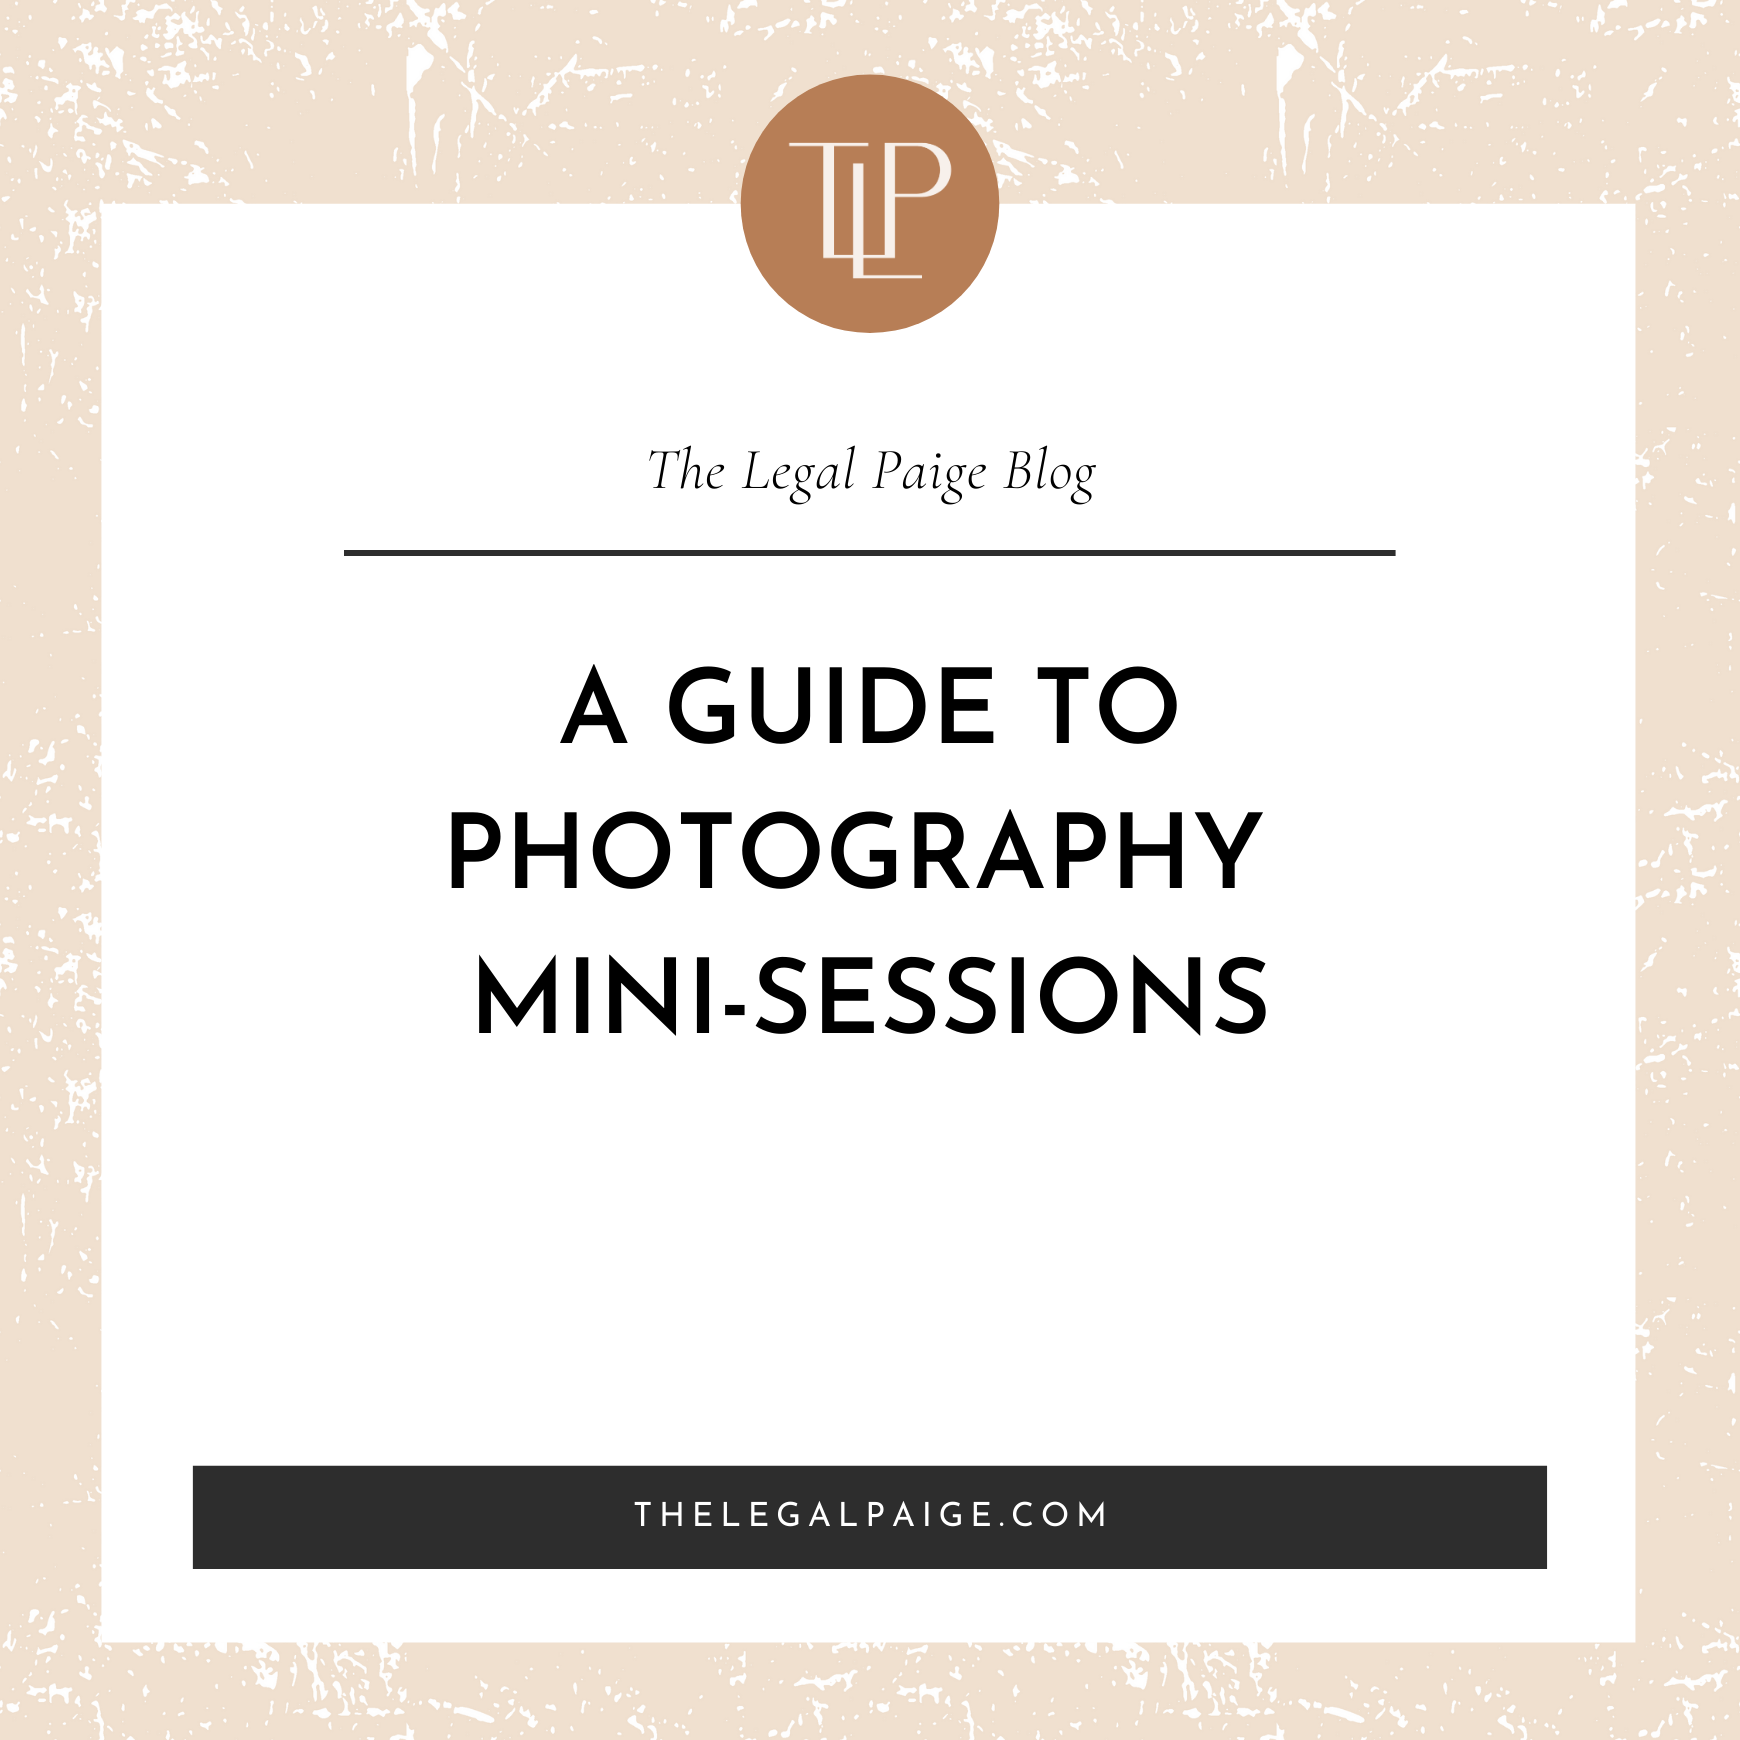 A Guide to Photography Mini Sessions